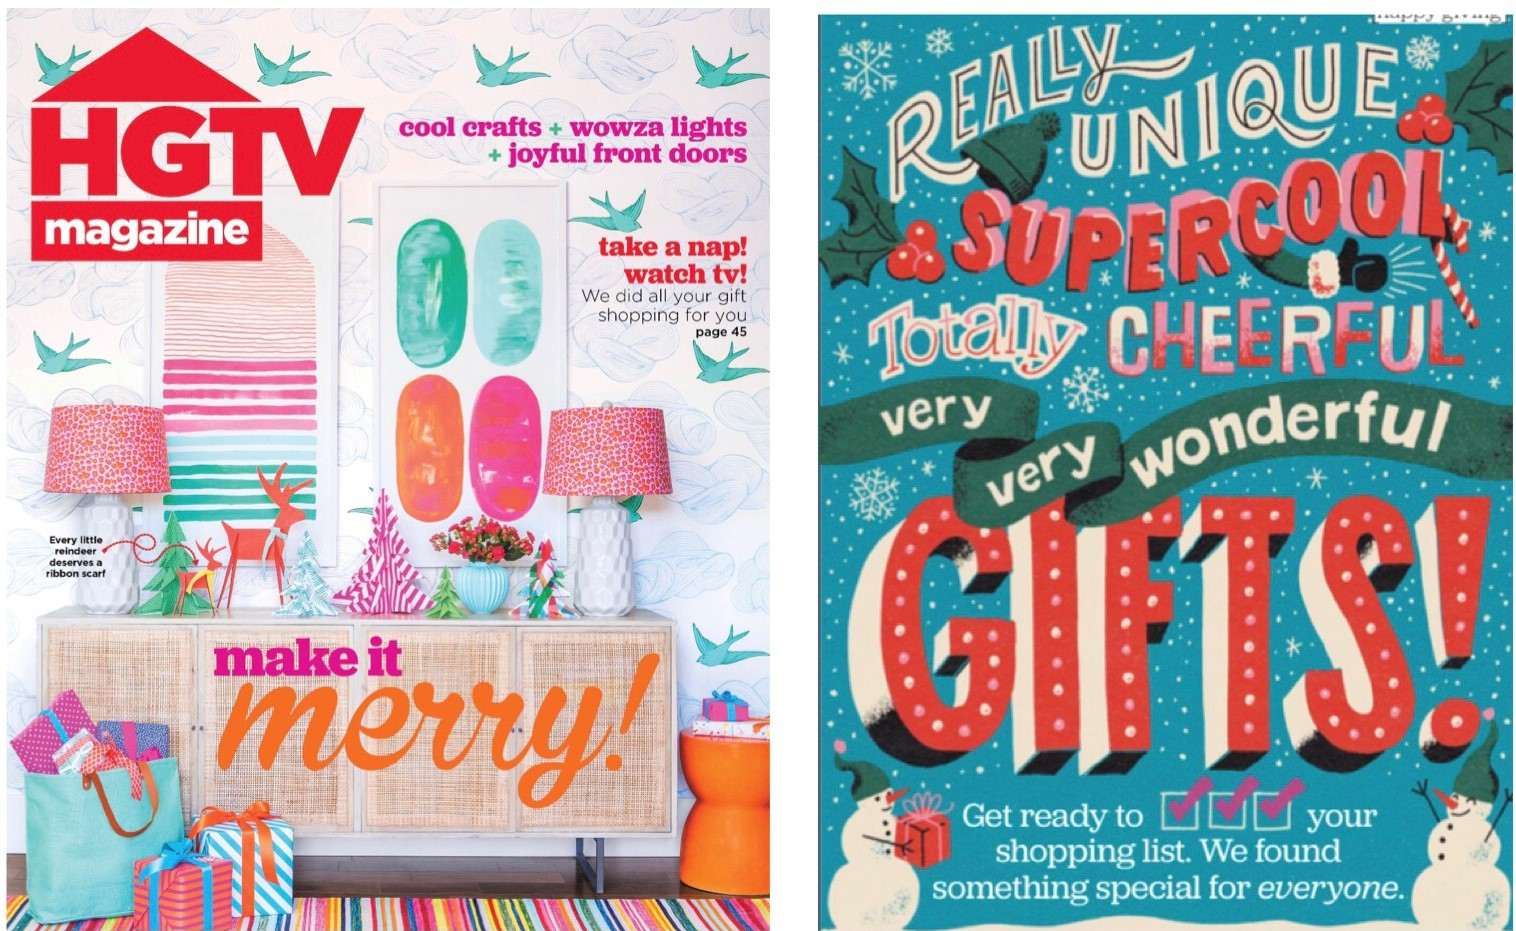 HGTV magazine Christmas Gift Guide